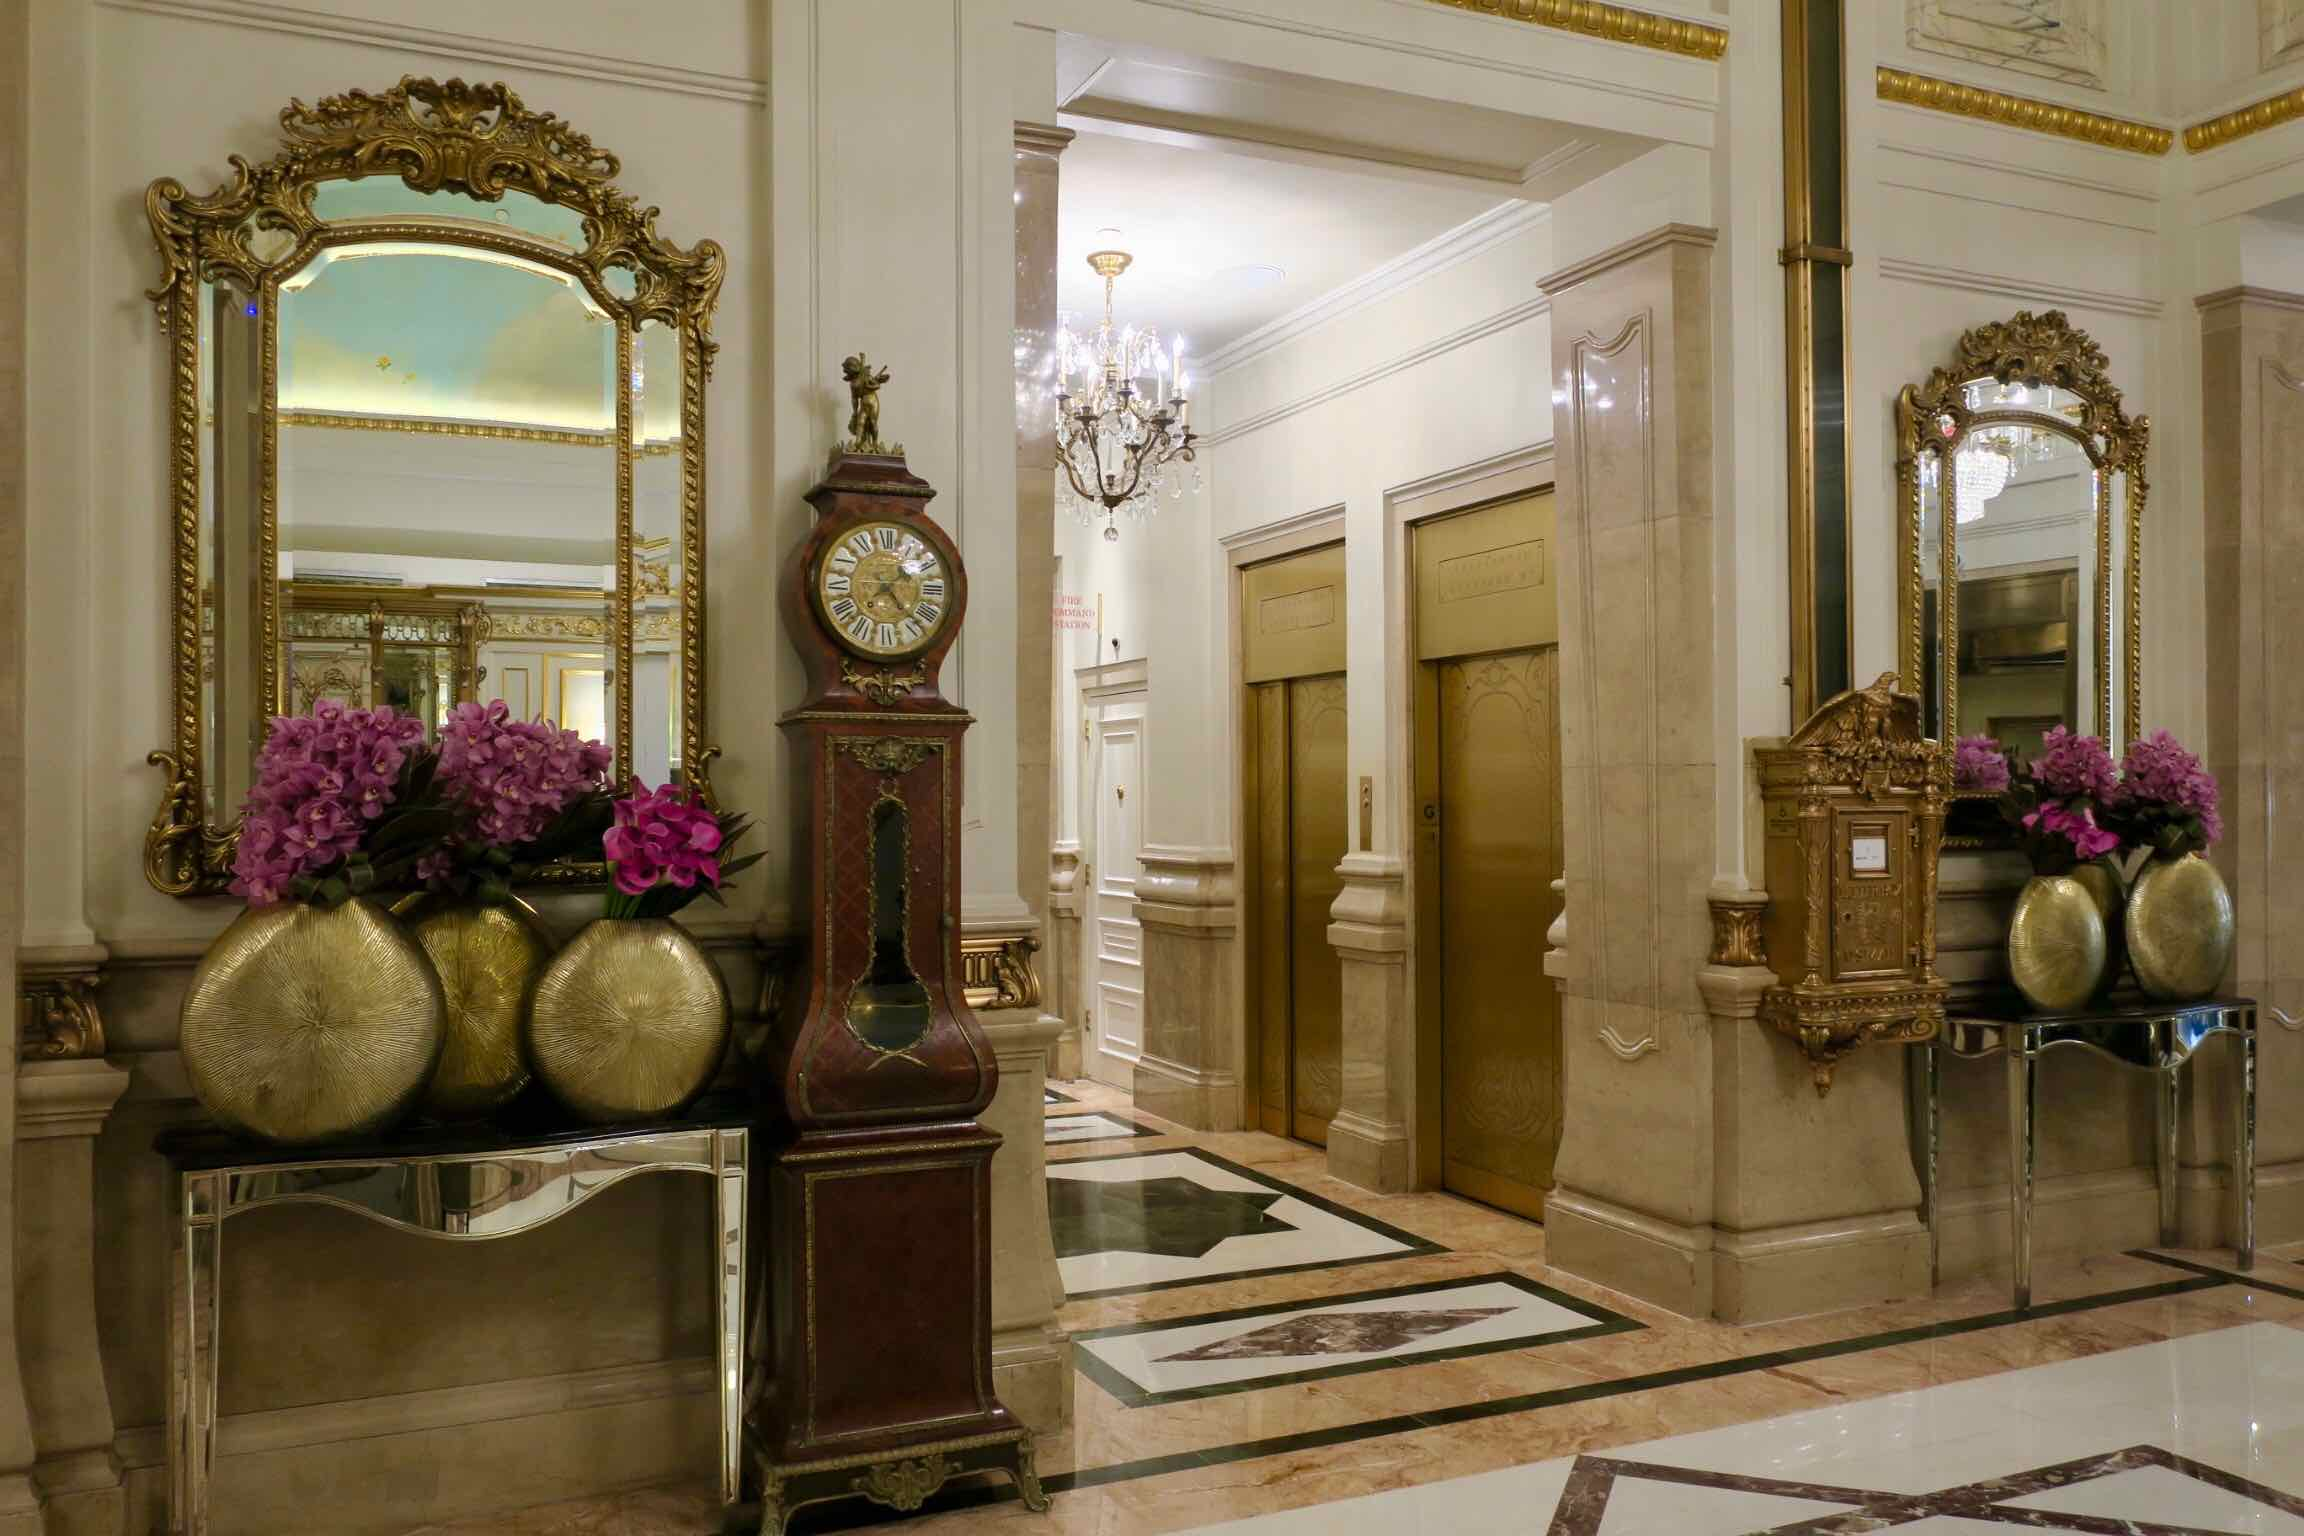 The St. Regis New York elevator